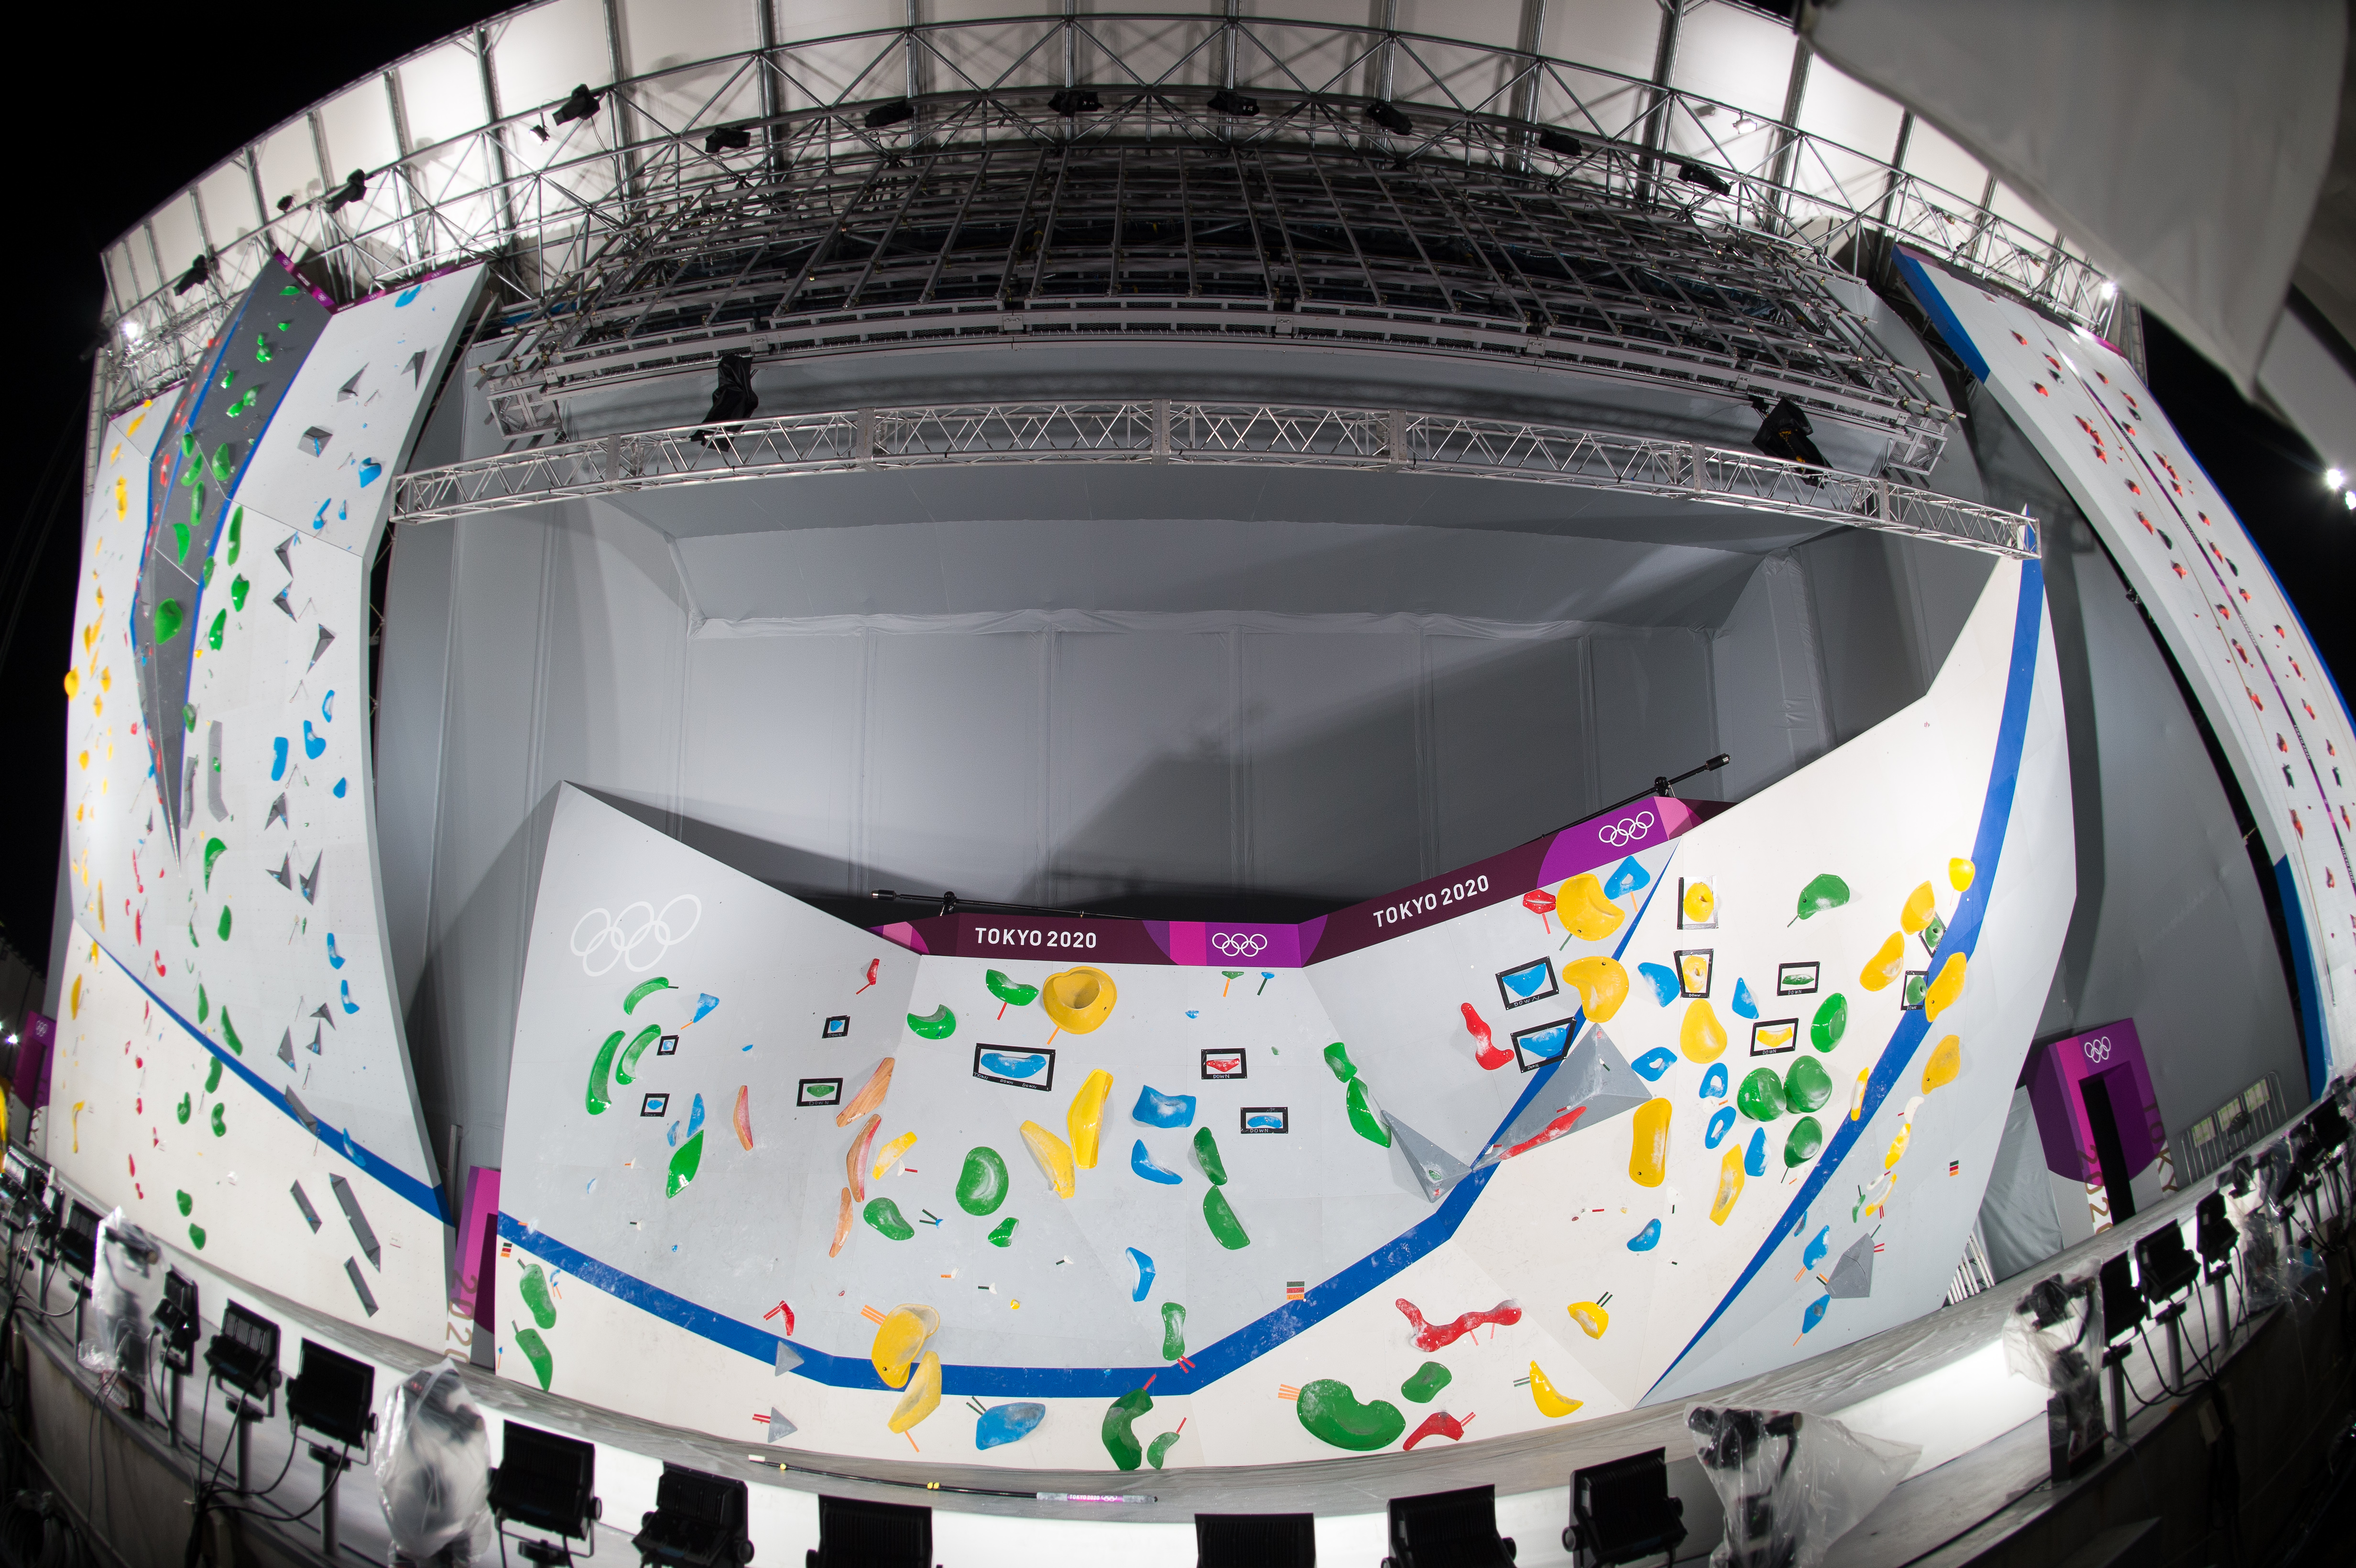 210731 IFSC News Climbing community gather virtually on the eve of historic Olympic debut